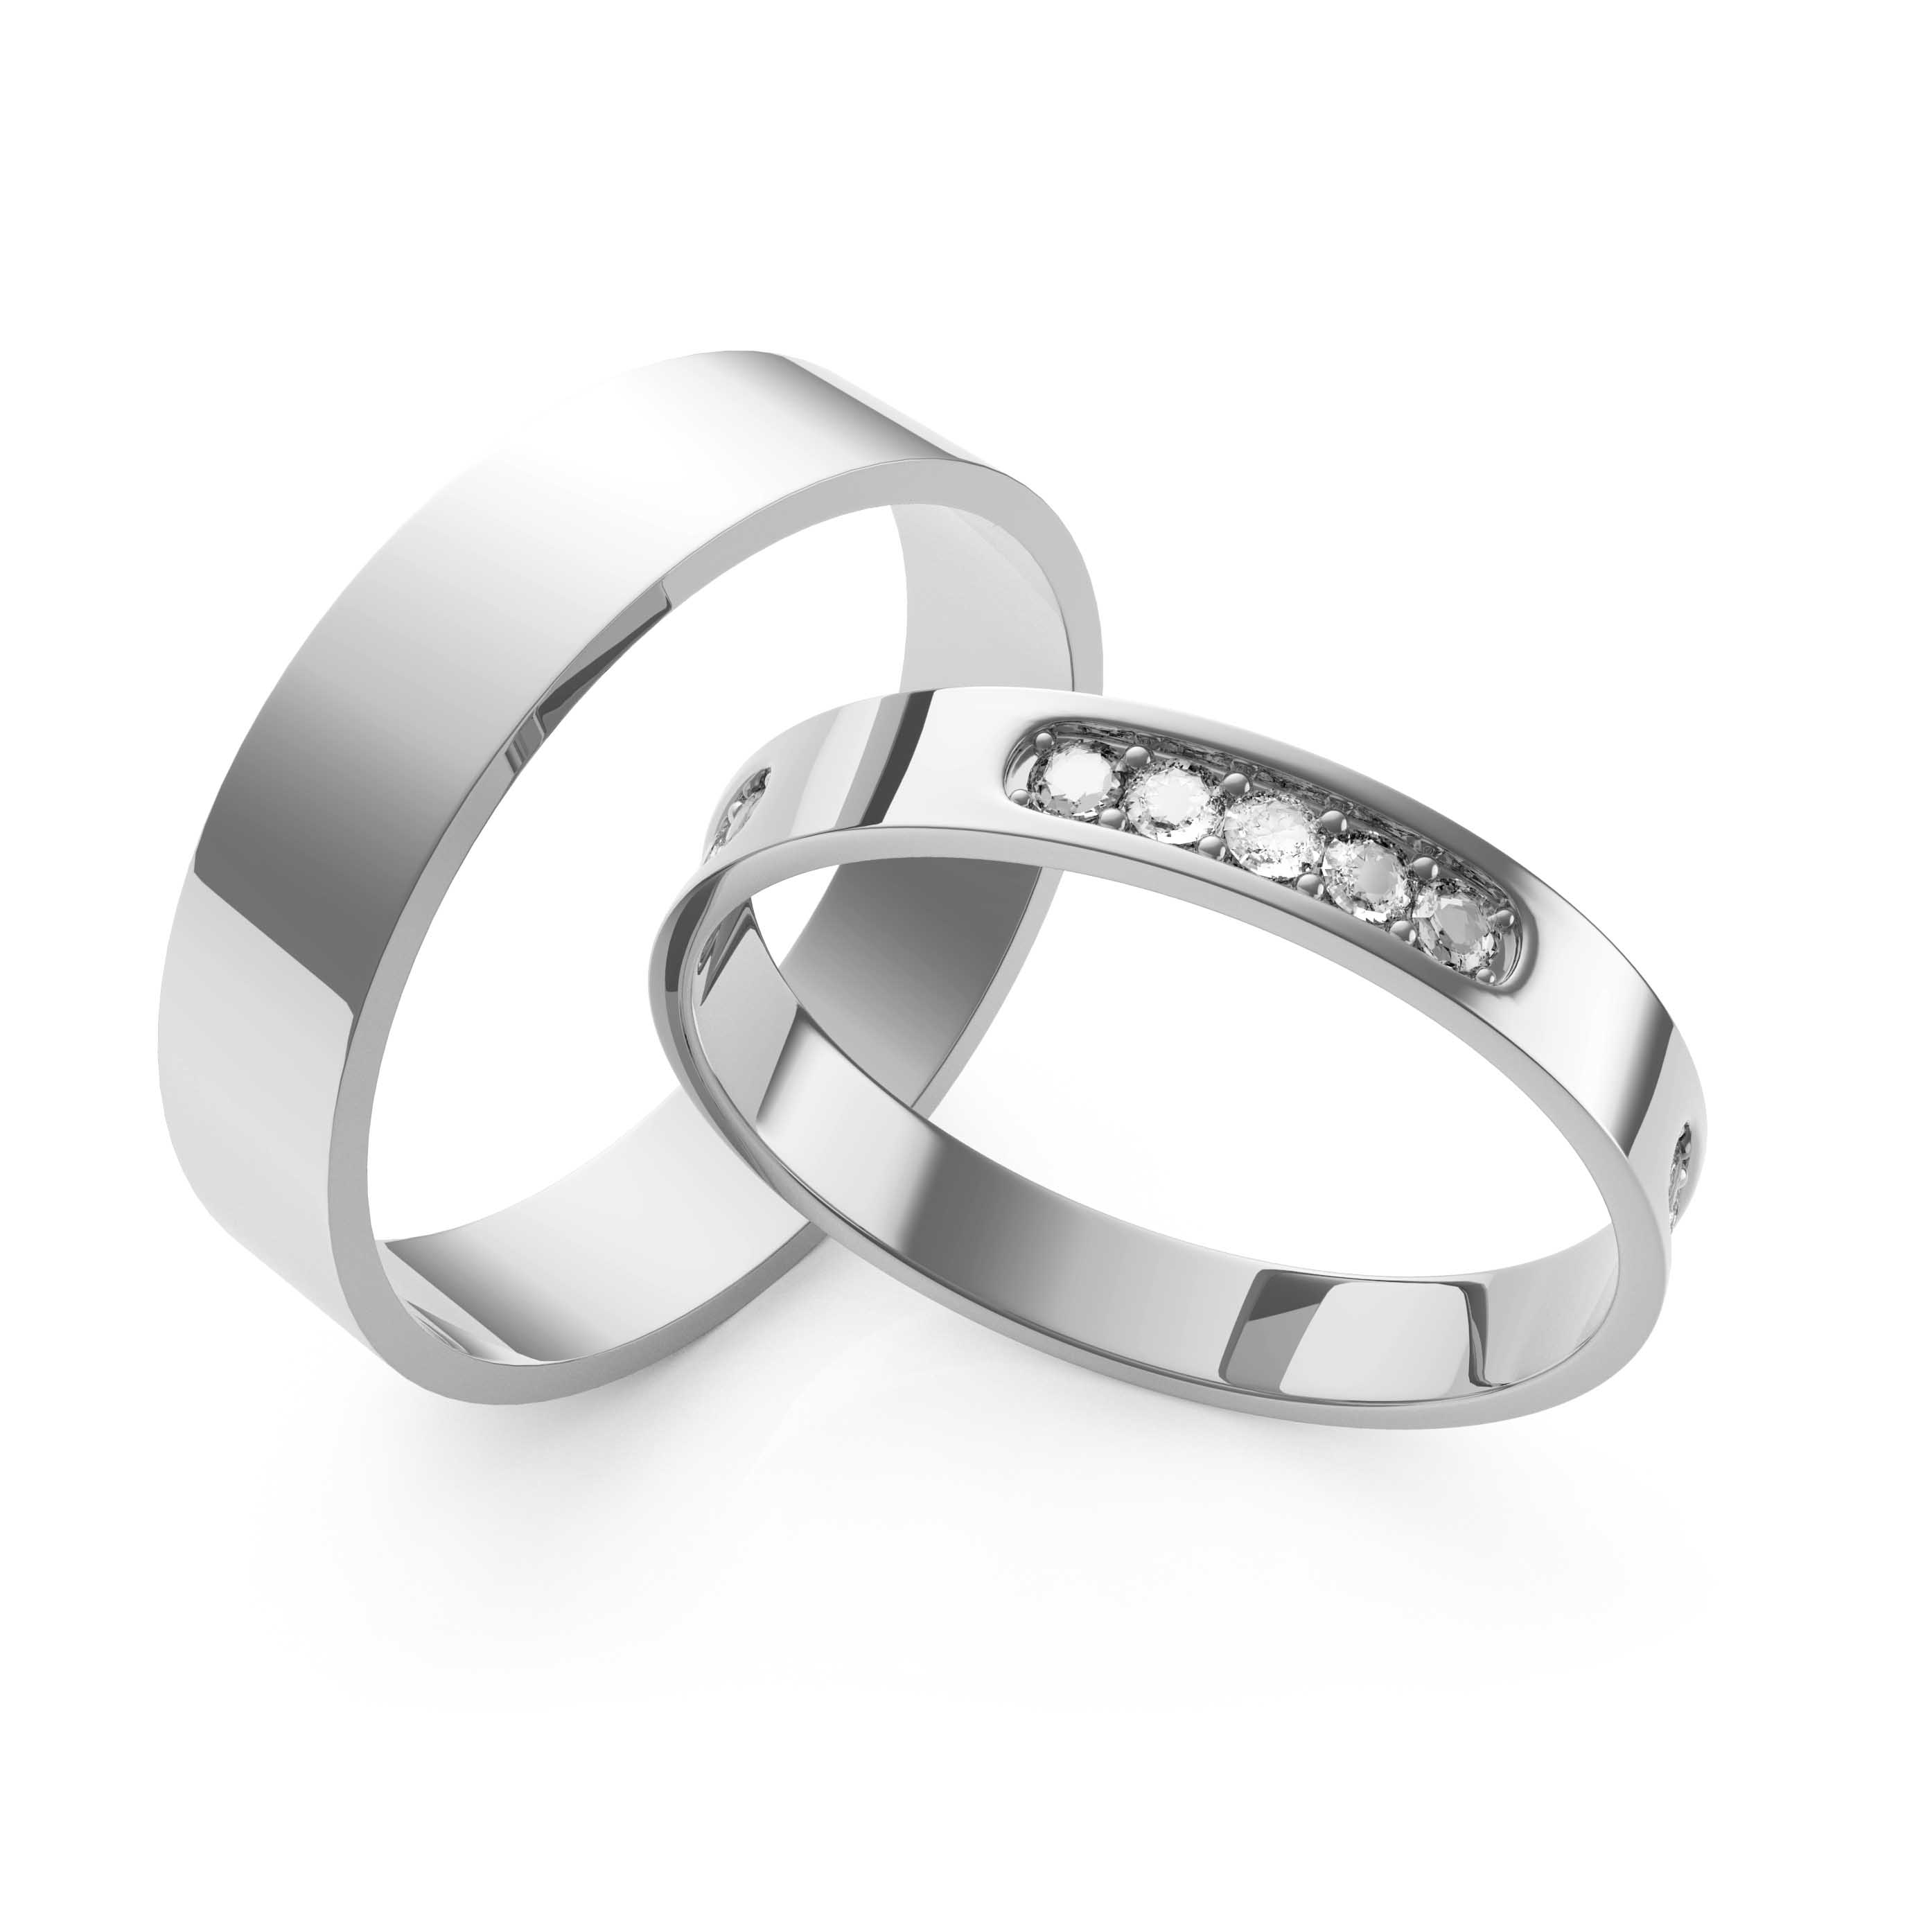 Rings Set White Gold - 3D Model